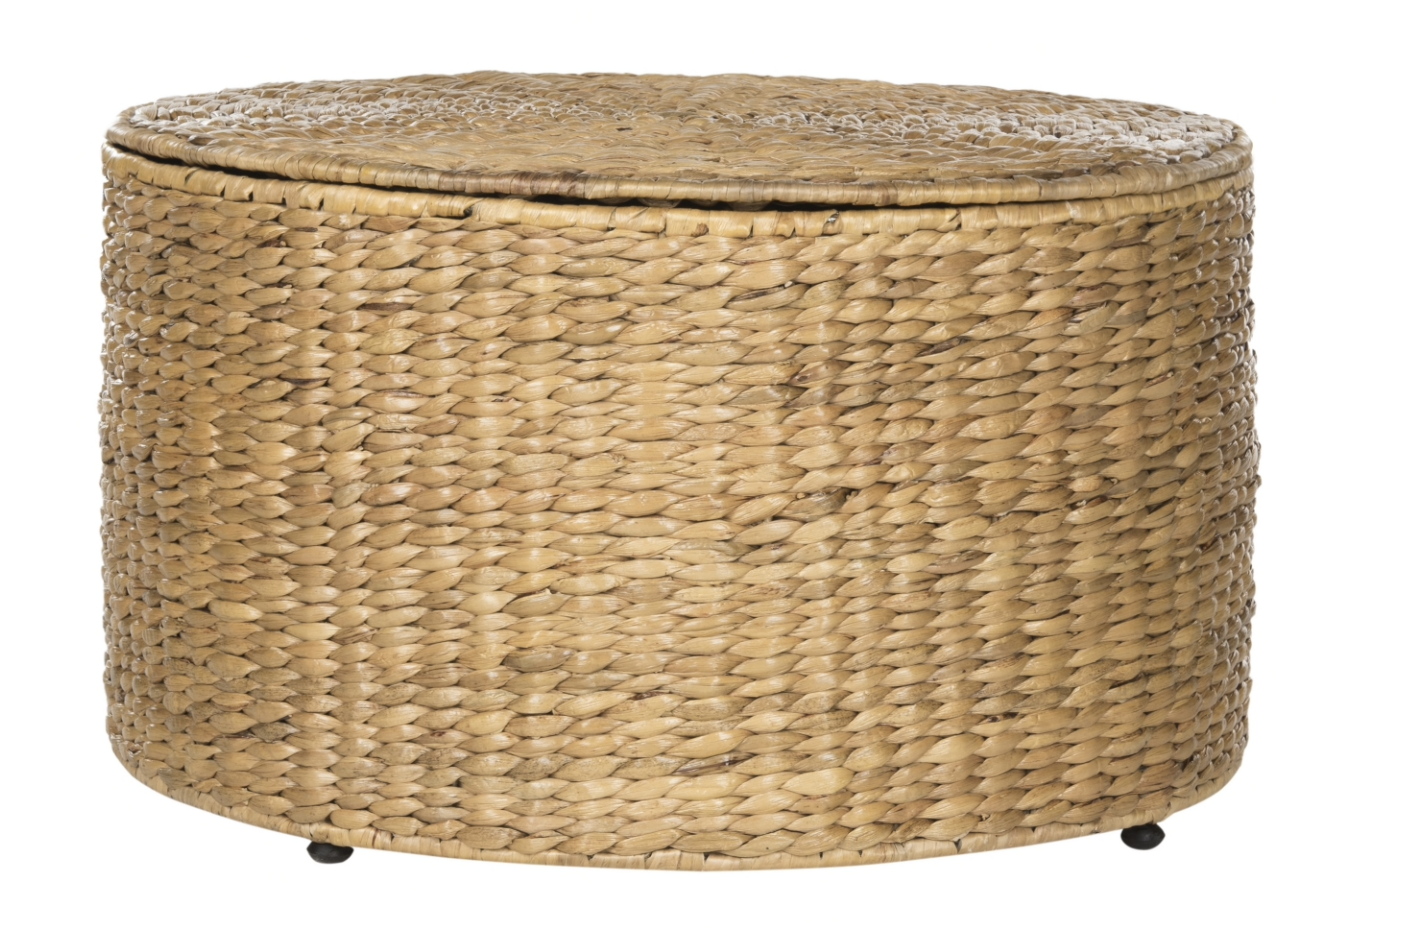 Safavieh Wicker Storage Coffee Table.png